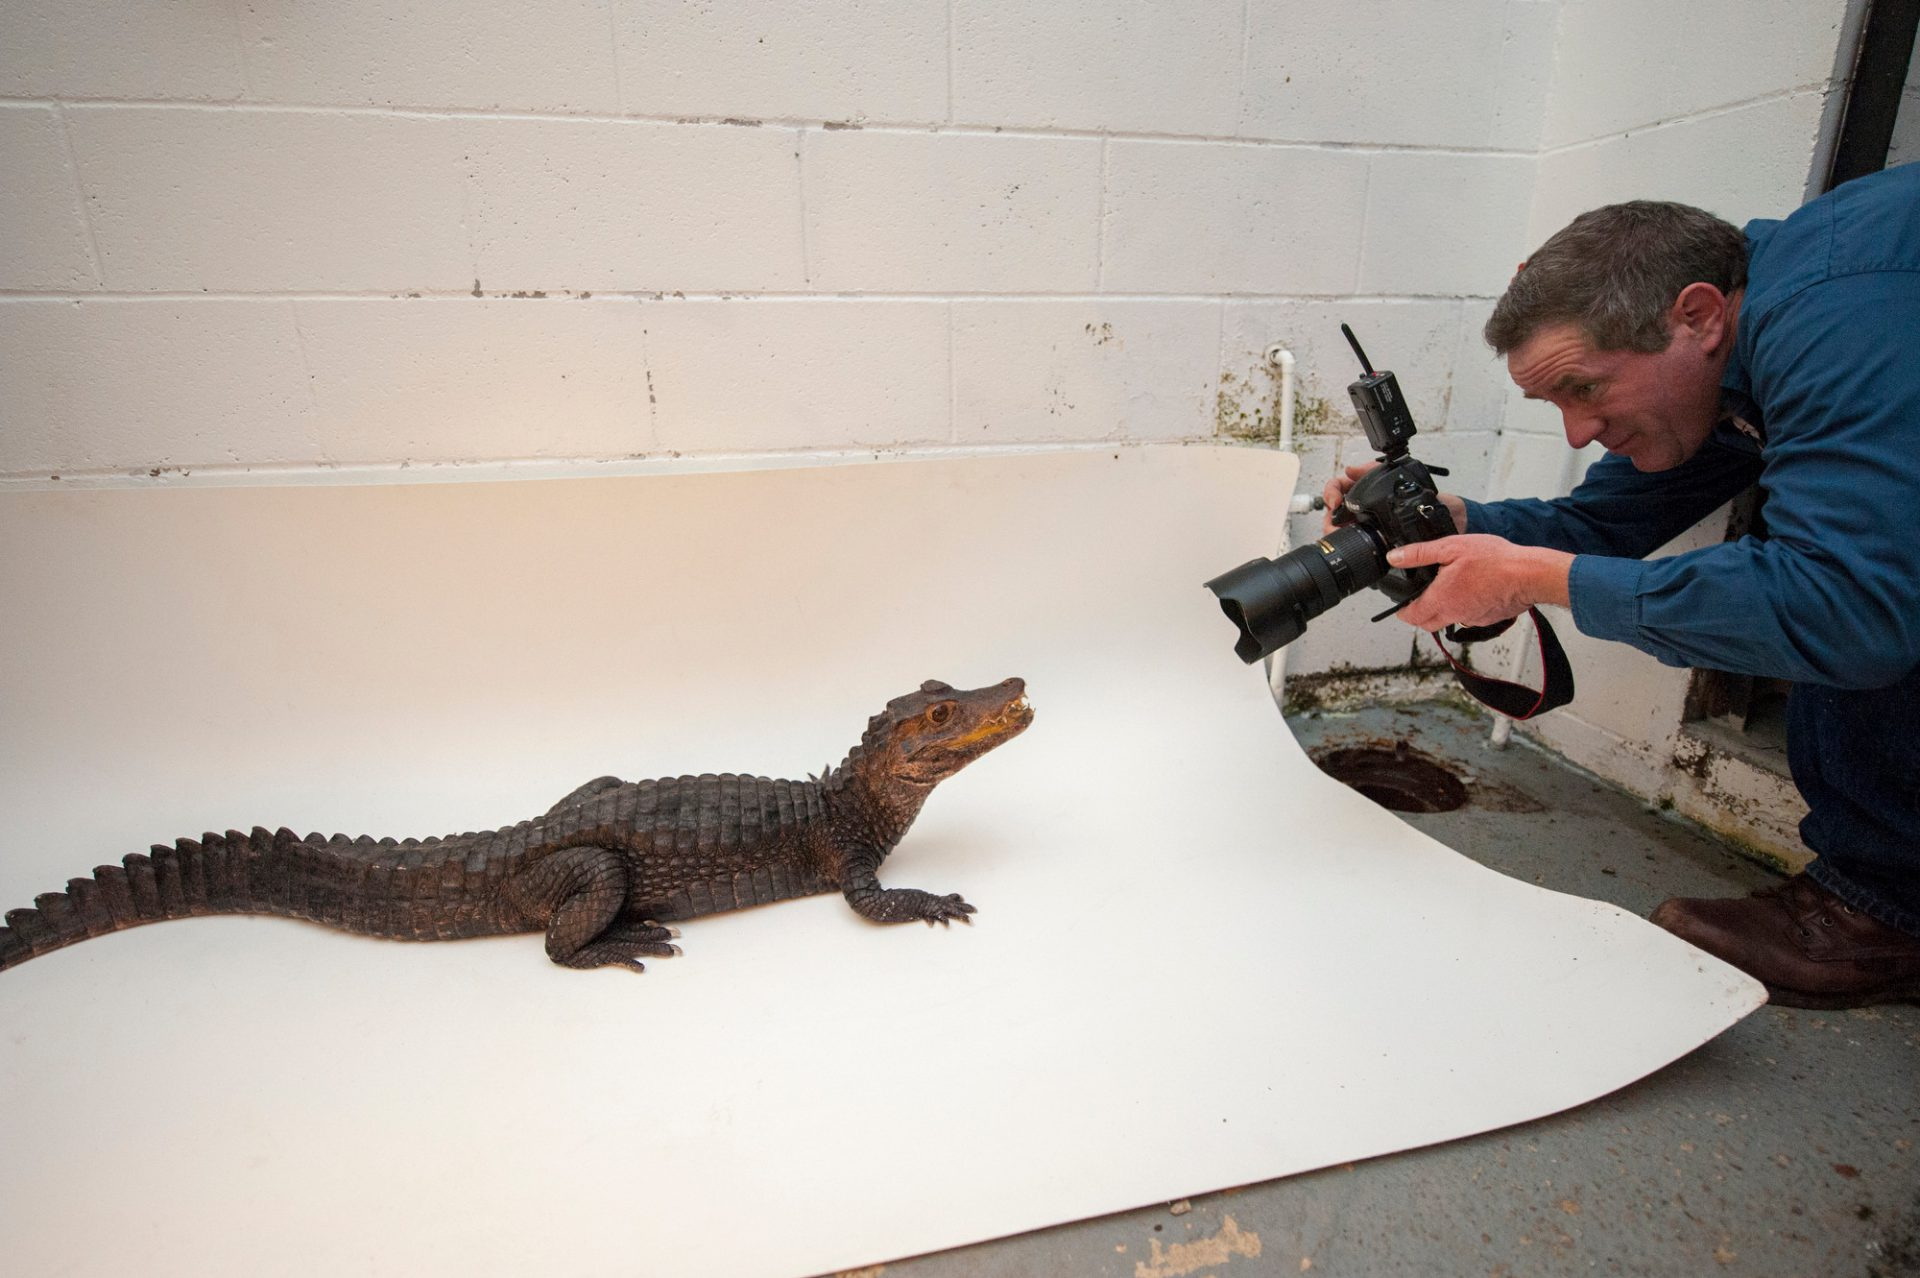 Joel carefully photographs dwarf caiman (Paleosuchus palpebrosus) at the Sunset Zoo.